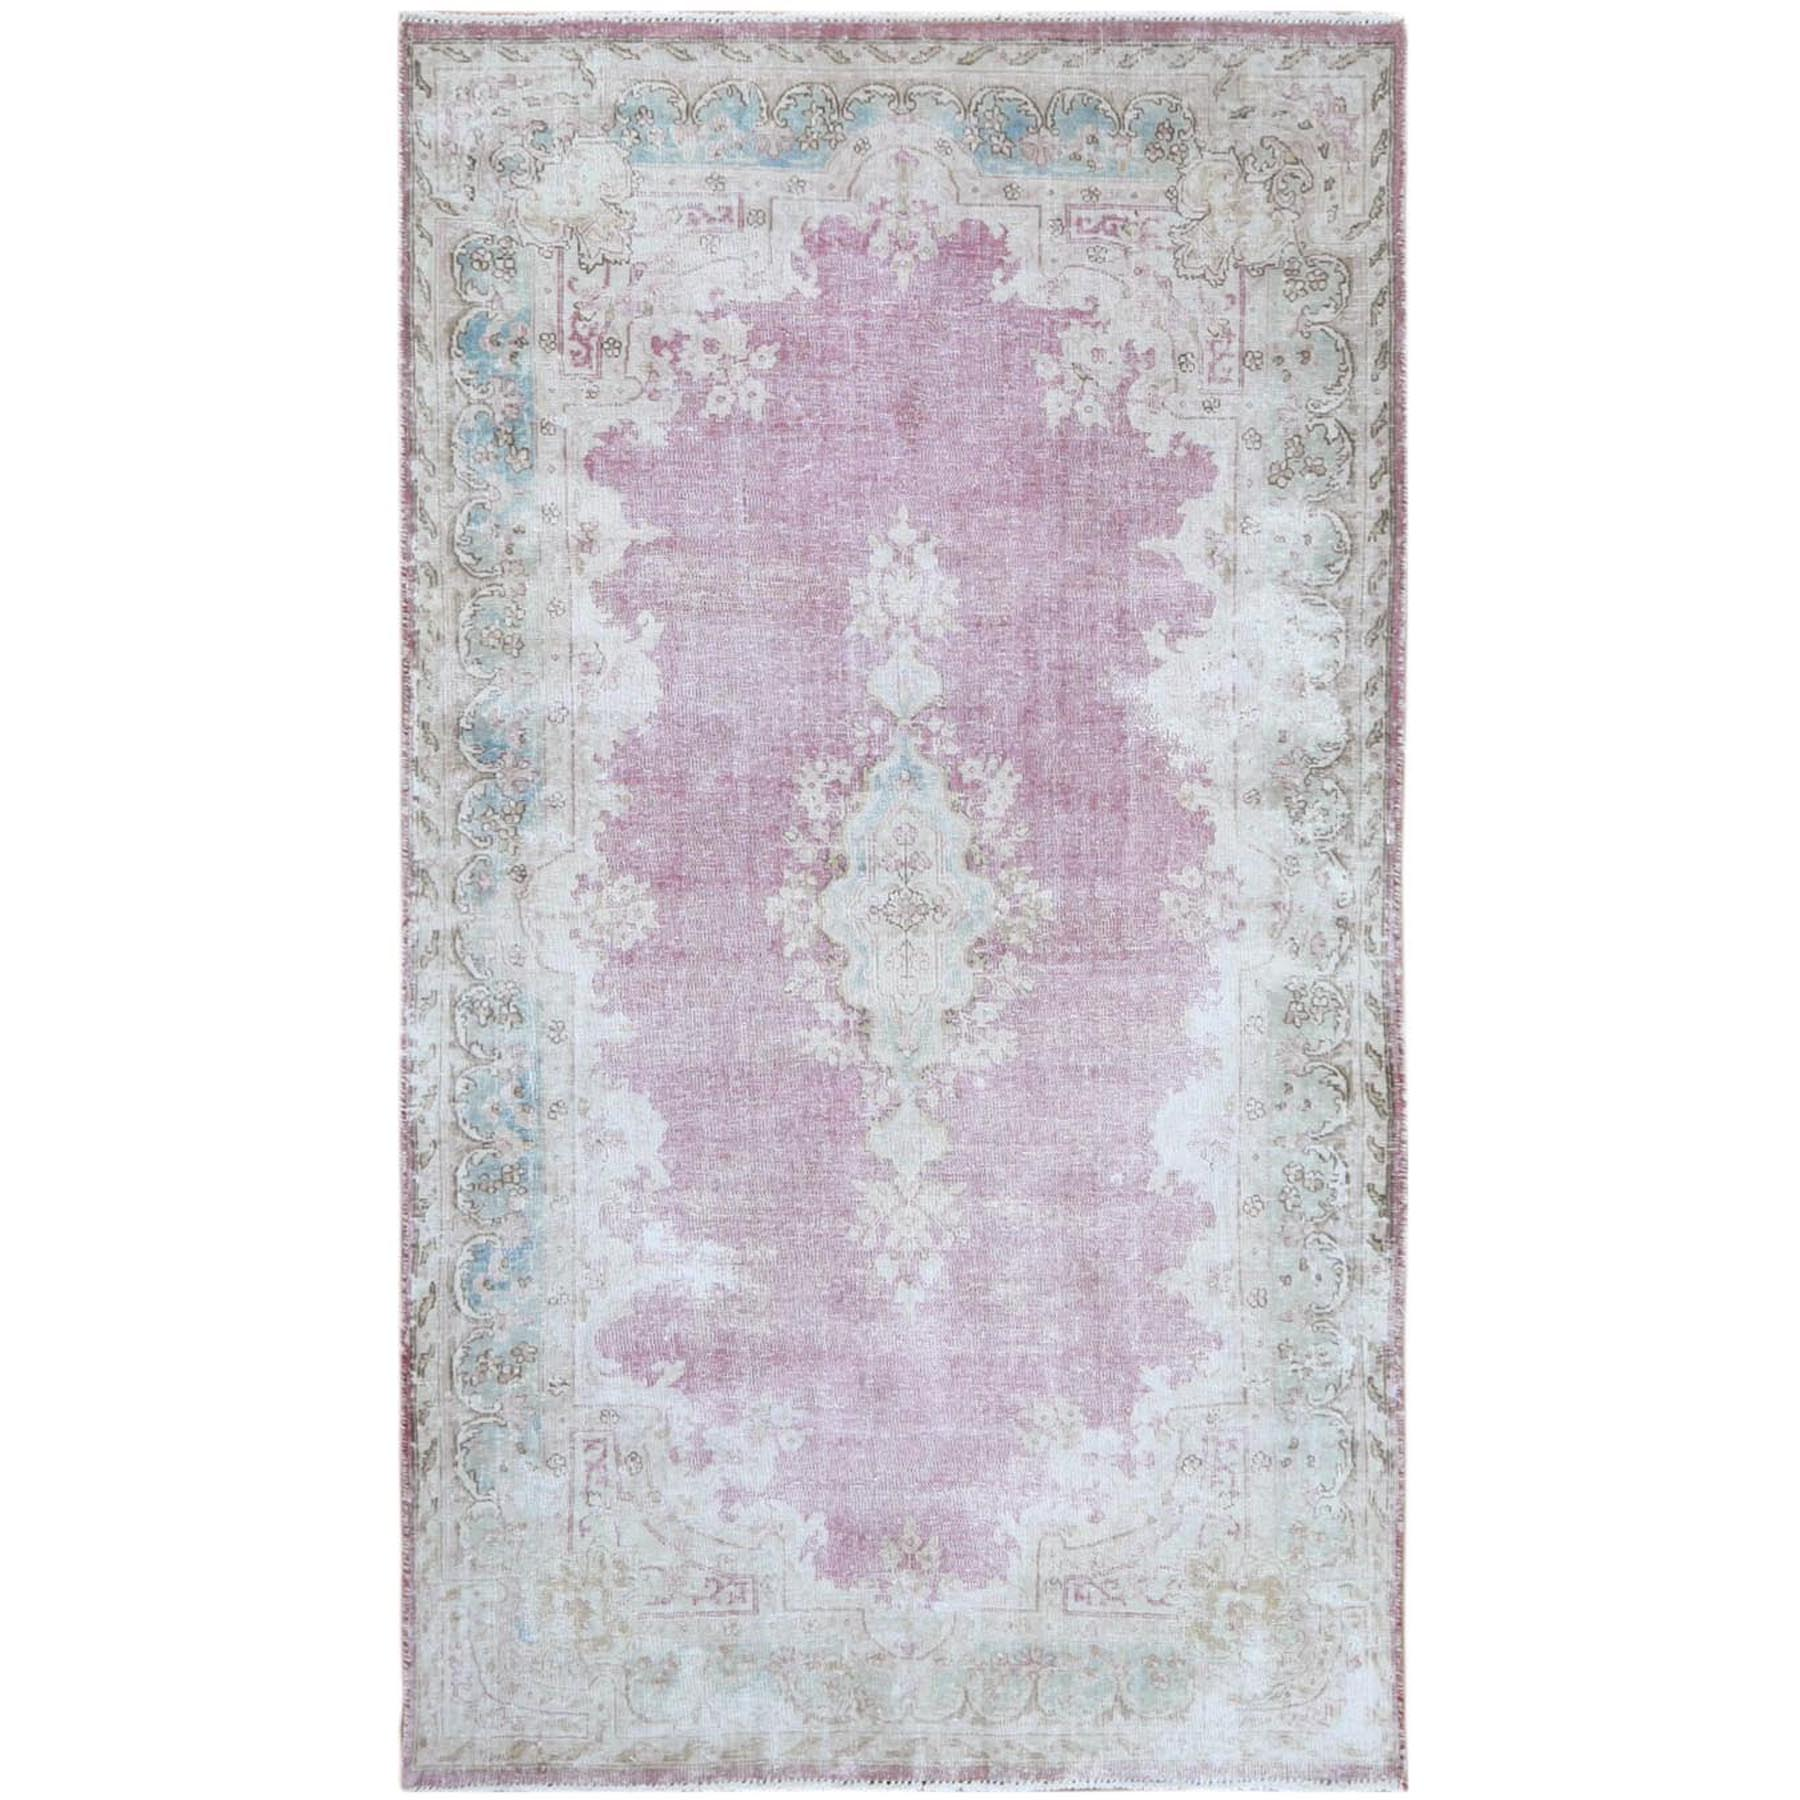 "3'9""x6'8"" Washed Out Pink Vintage Persian Kerman With Medallion Design Worn Down Beautiful Hand Knotted Pure Wool Oriental Rug"